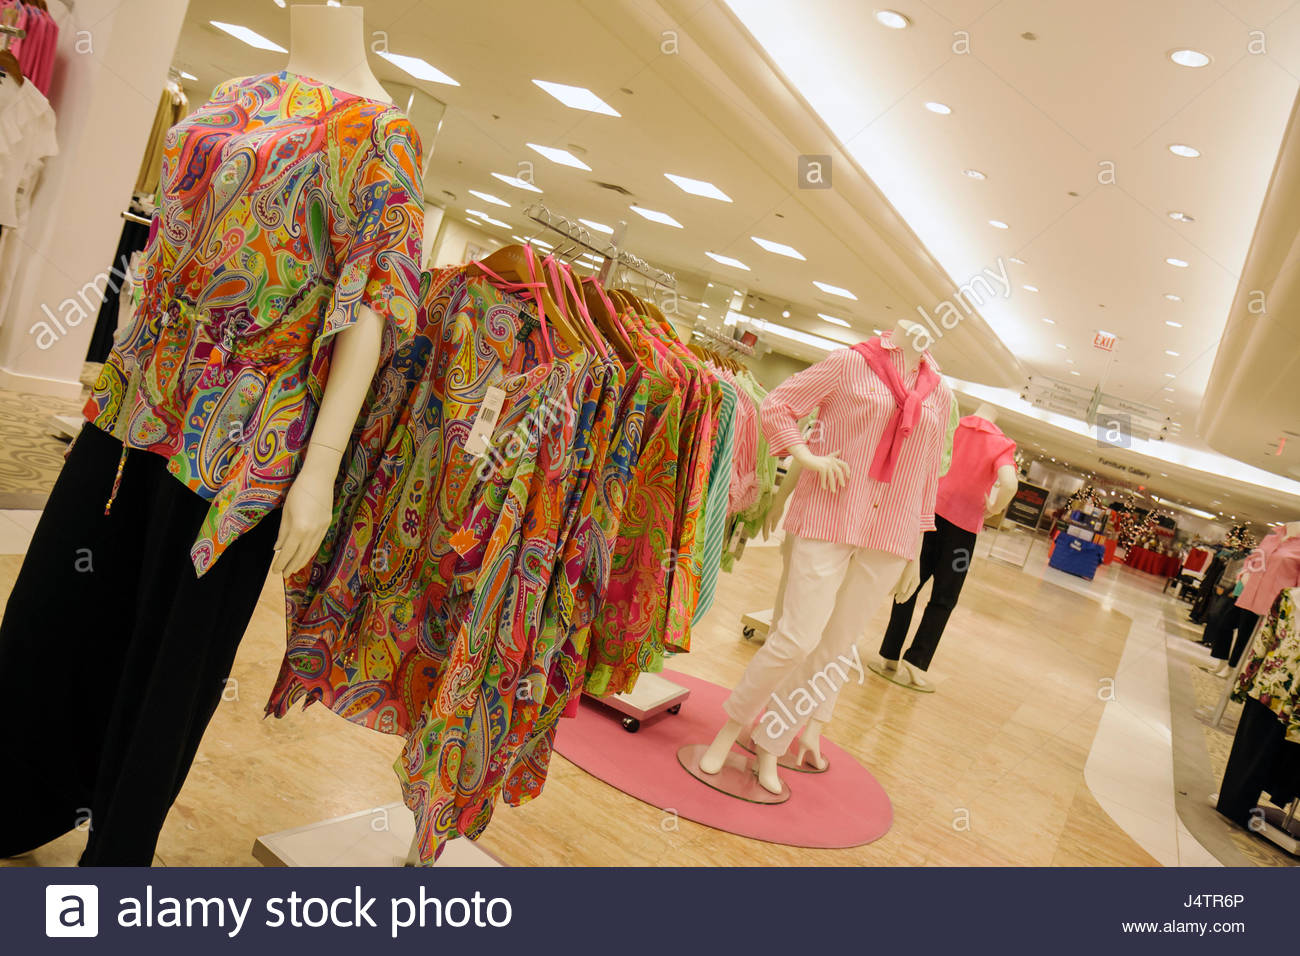 Palm Beach Florida Gardens The Gardens Mall Macy's anchor department store business retail fashion shopping - Stock Image